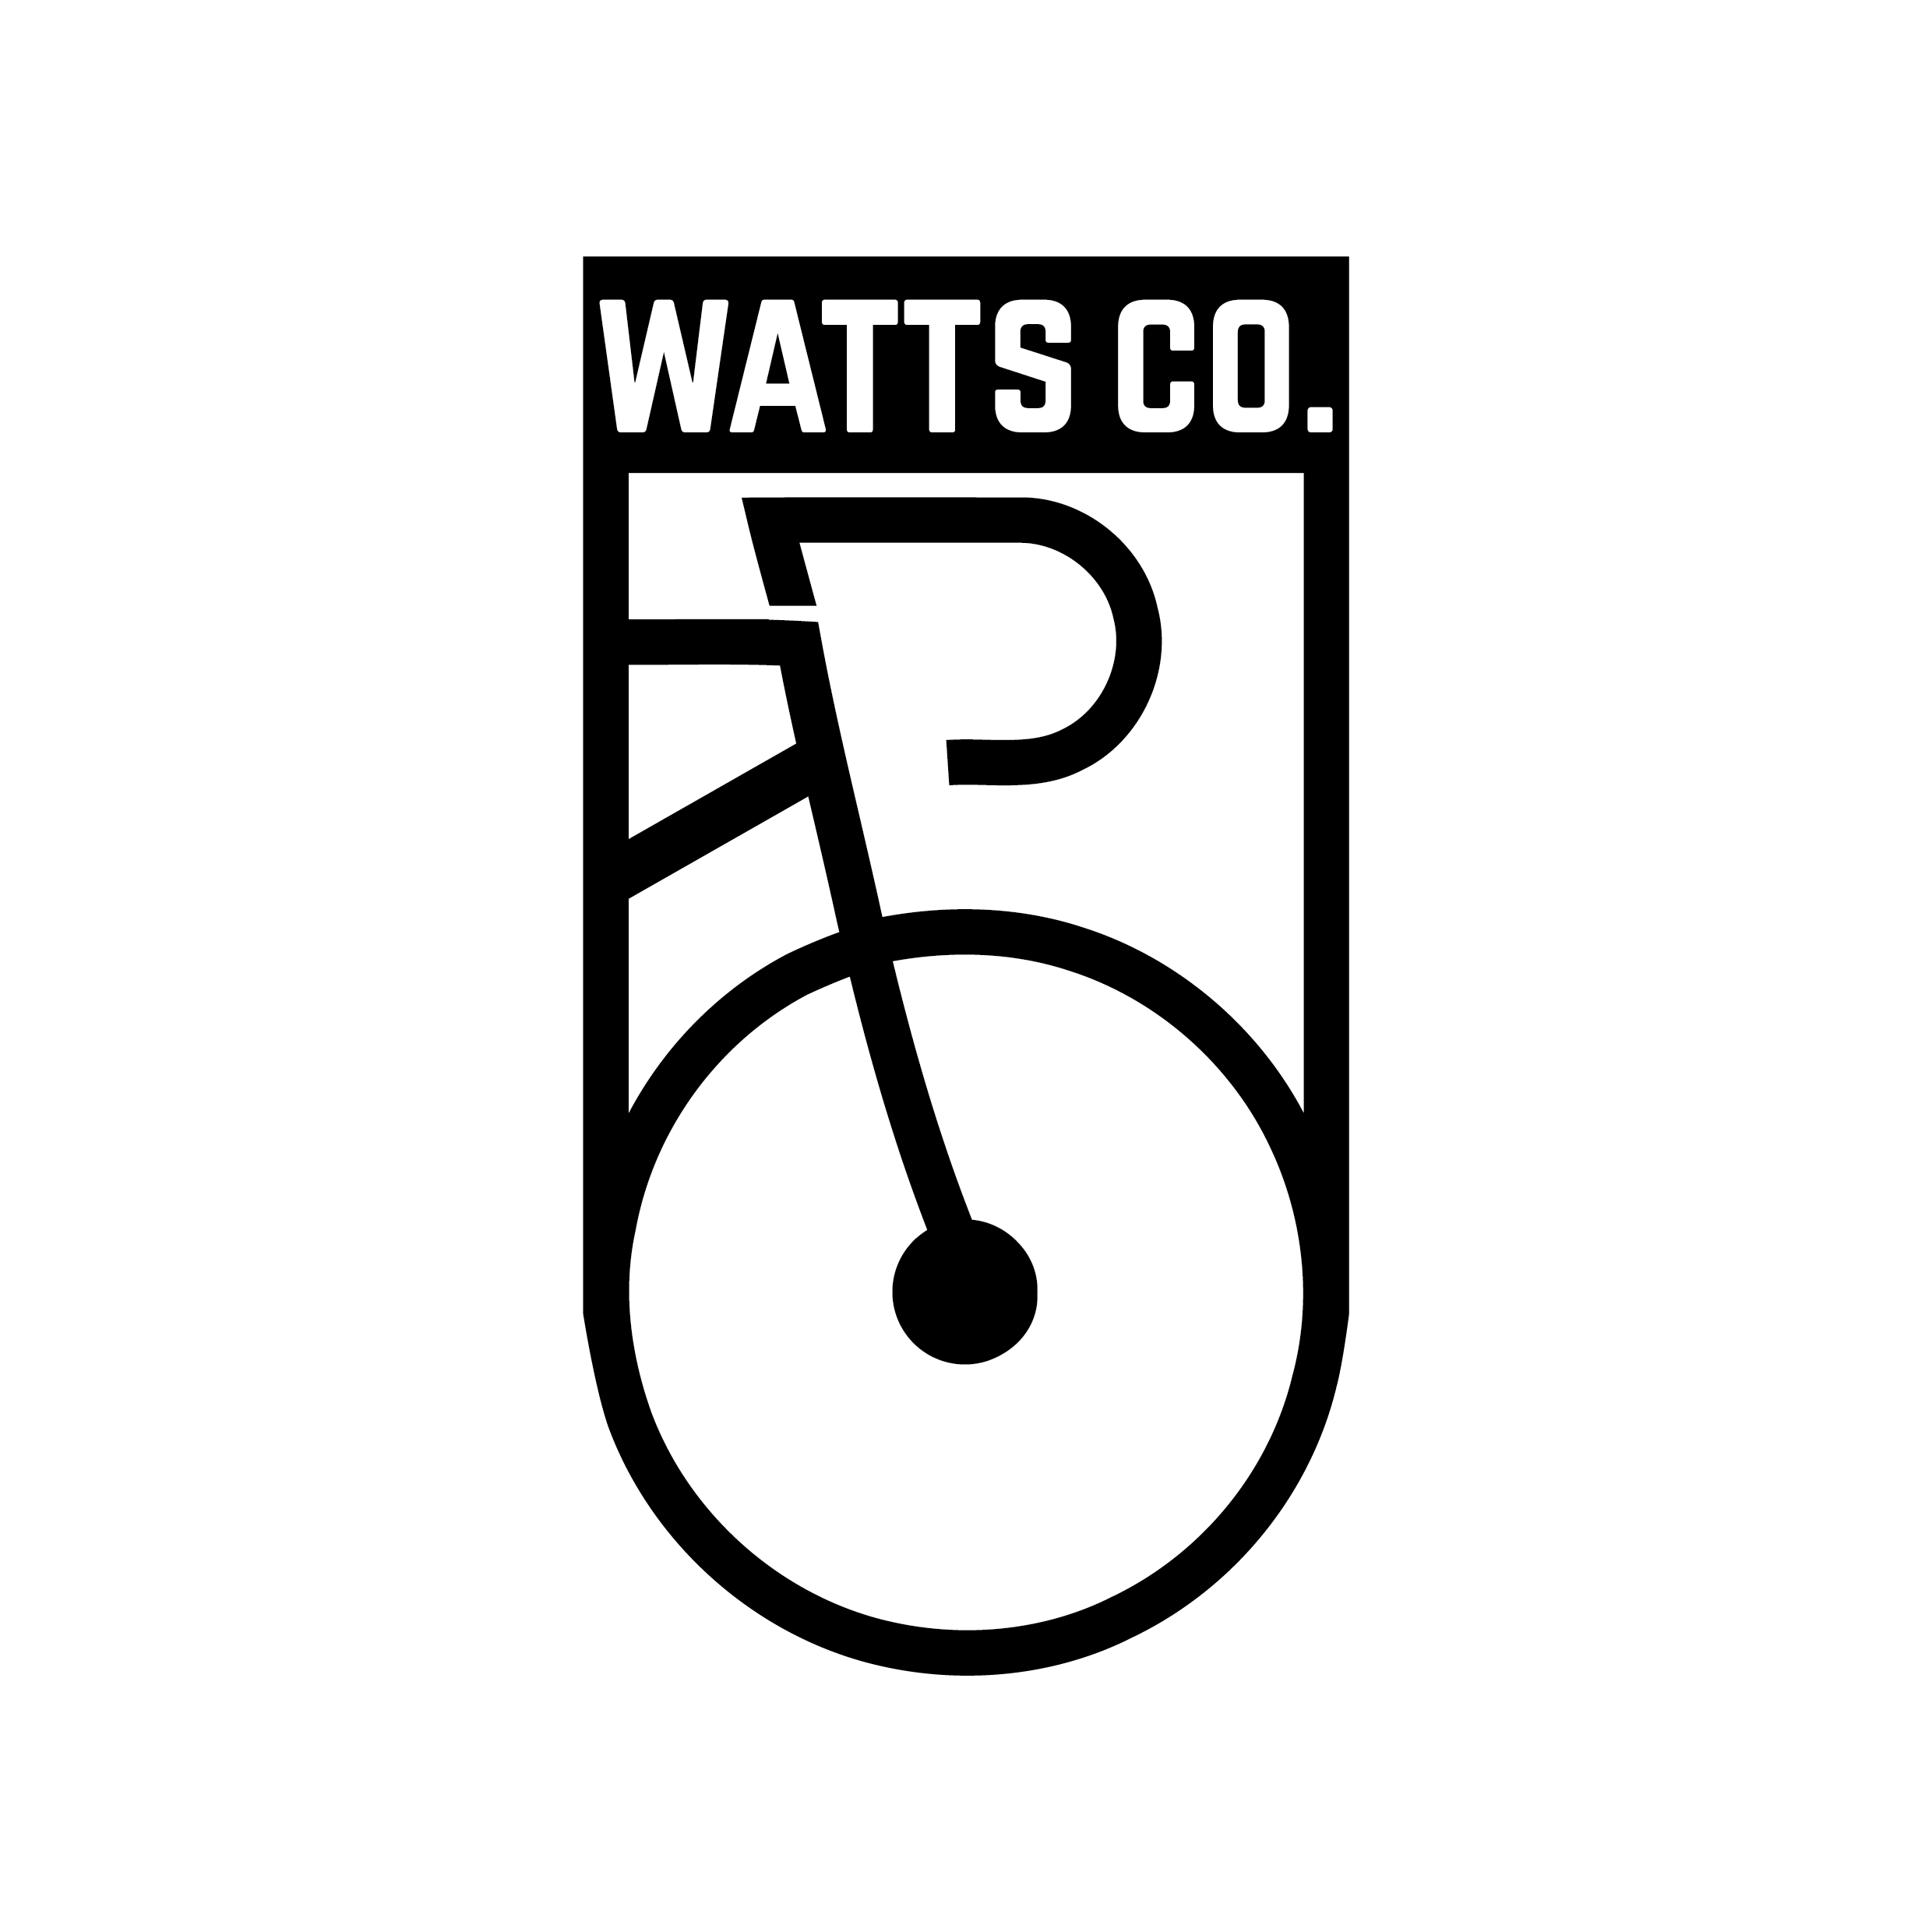 WATTS CO. | Comunidad de ciclismo